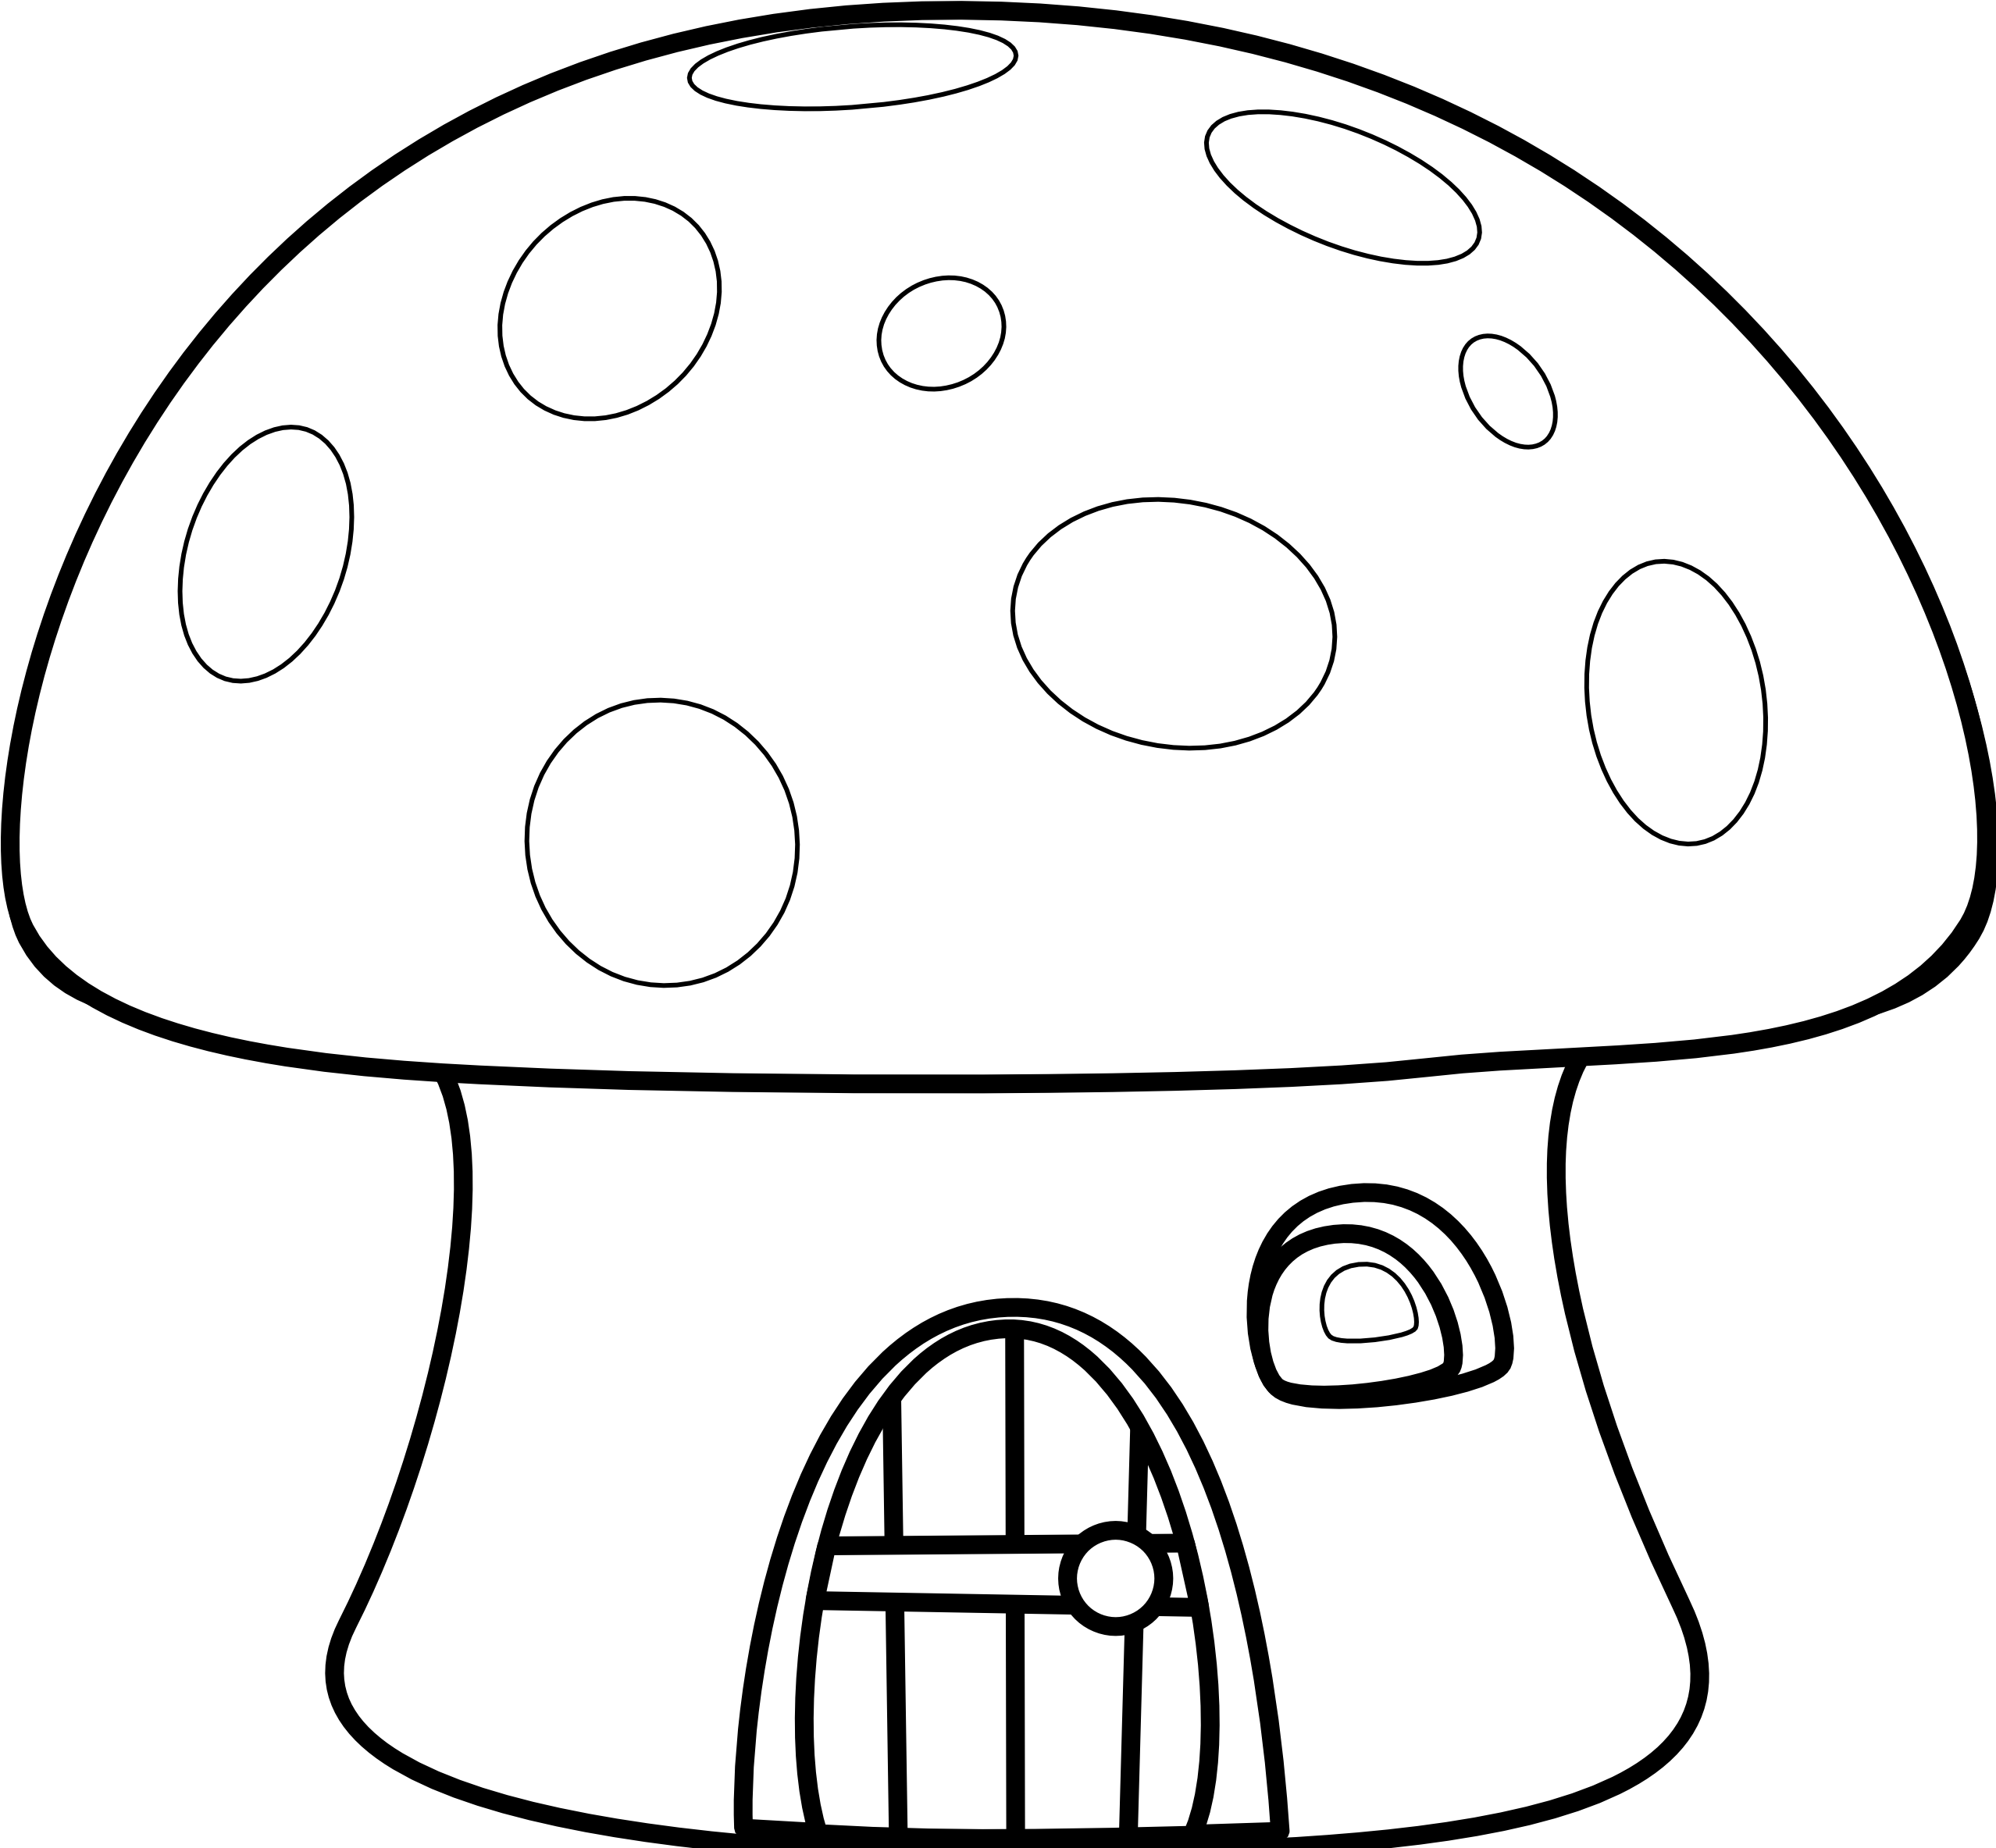 House black and white house black white clipart mushroom house coloring pages 2555x2374